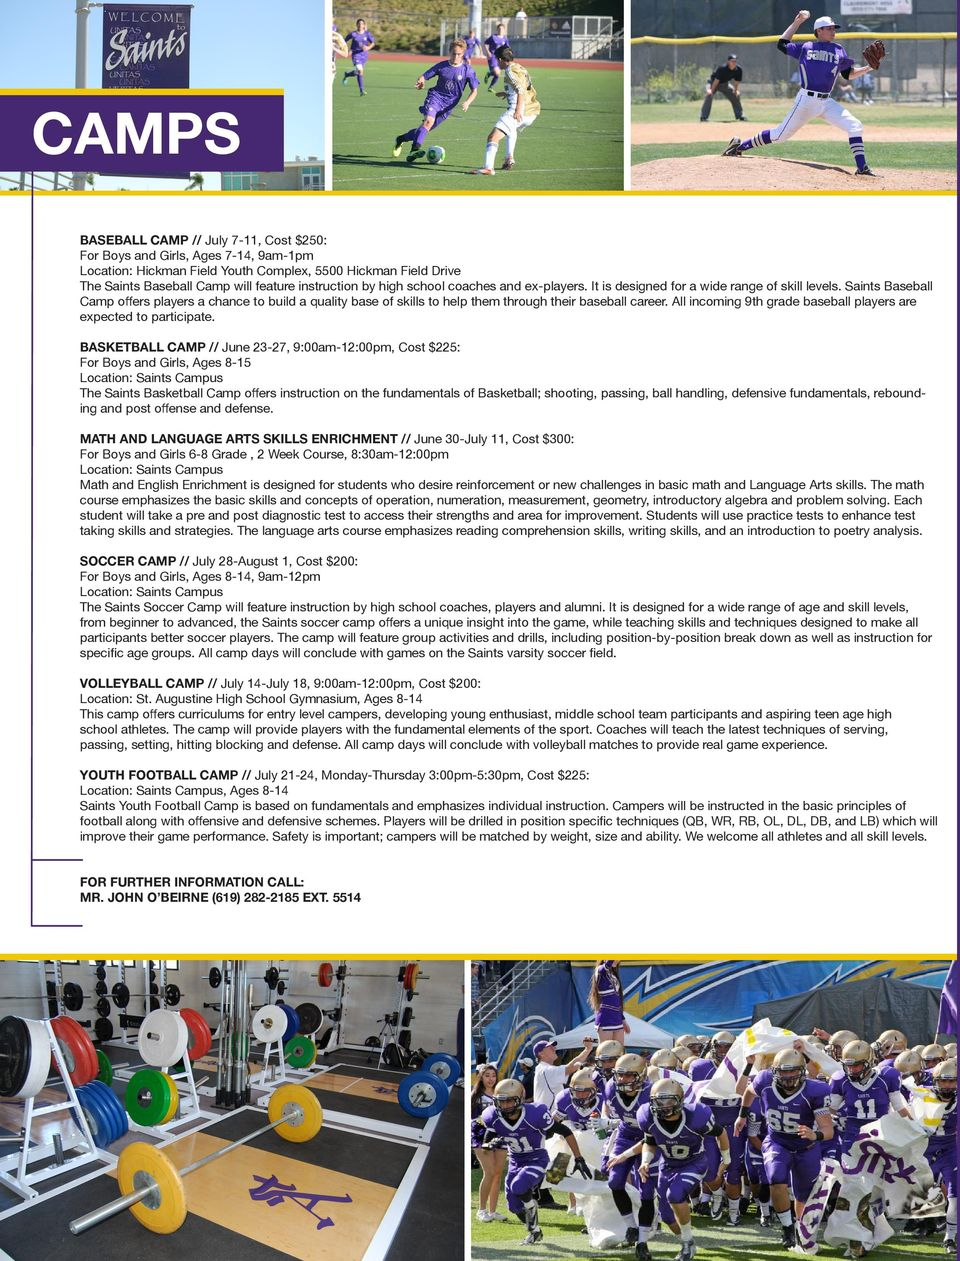 Saints Baseball Camp offers players a chance to build a quality base of skills to help them through their baseball career. All incoming 9th grade baseball players are expected to participate.